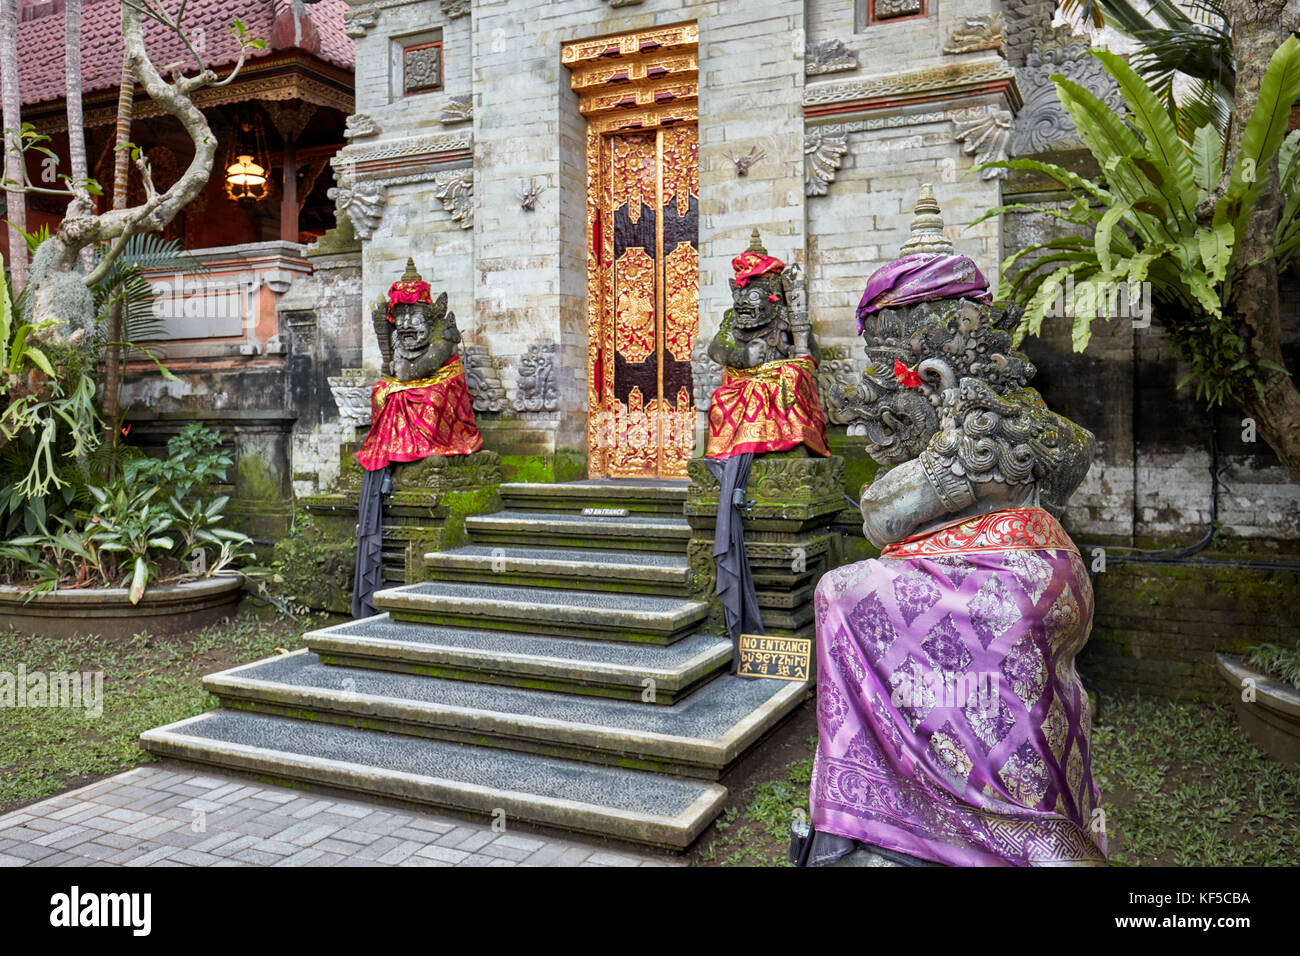 Carved stone statues in Puri Saren Agung, also known as Ubud Palace. Ubud, Bali, Indonesia. - Stock Image